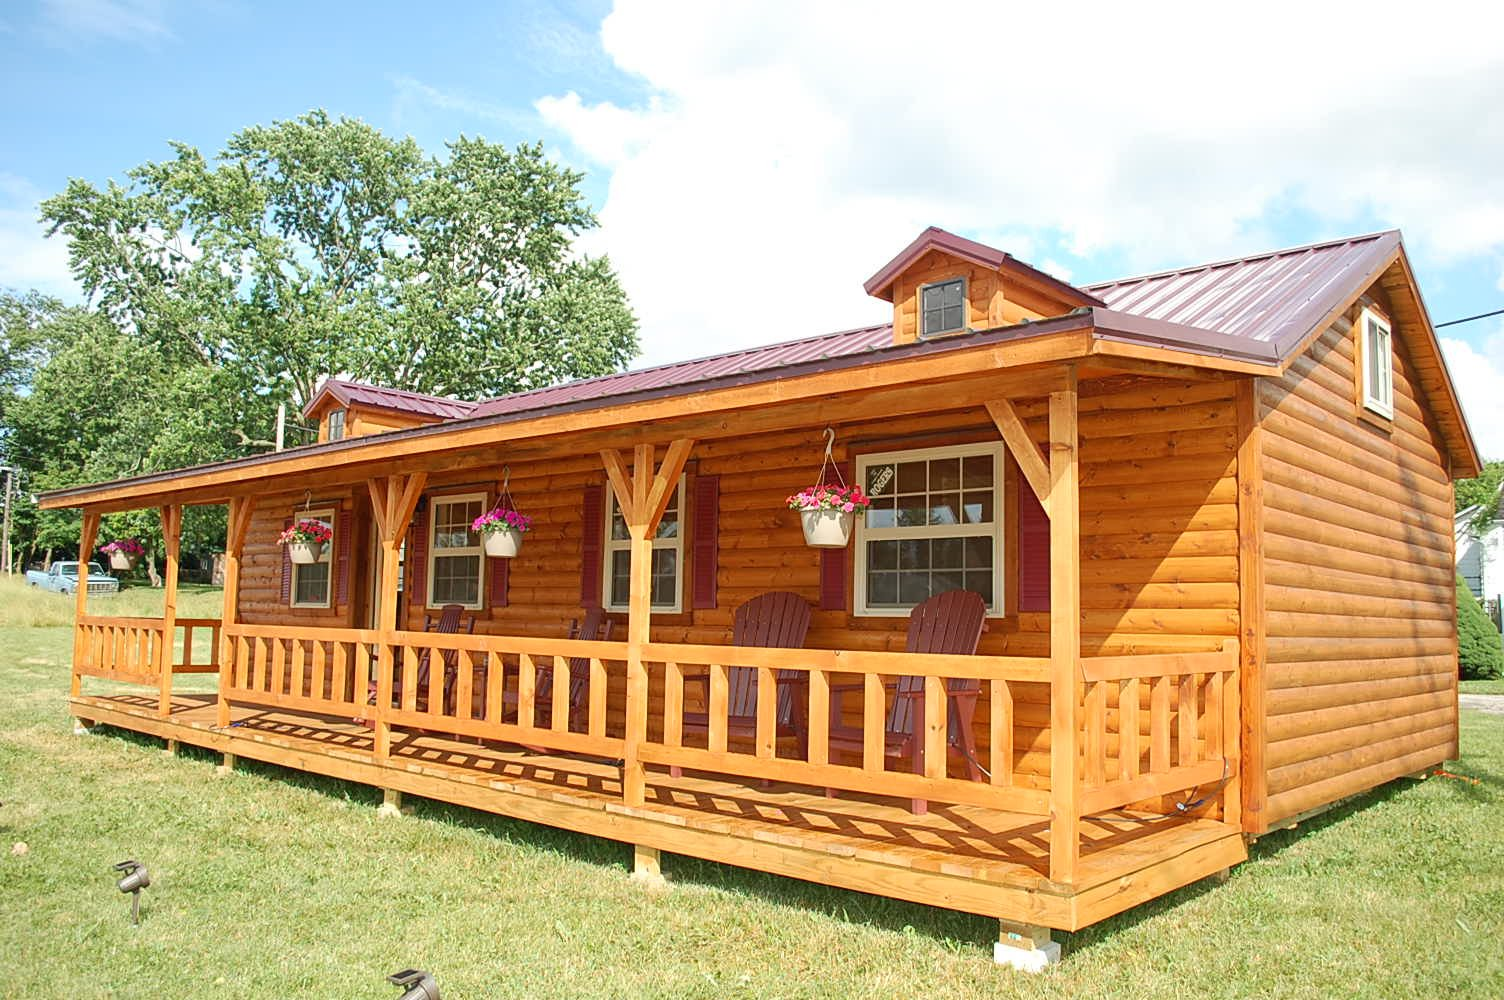 Log cabin kits 10 of the best on the market for Log cabin layouts